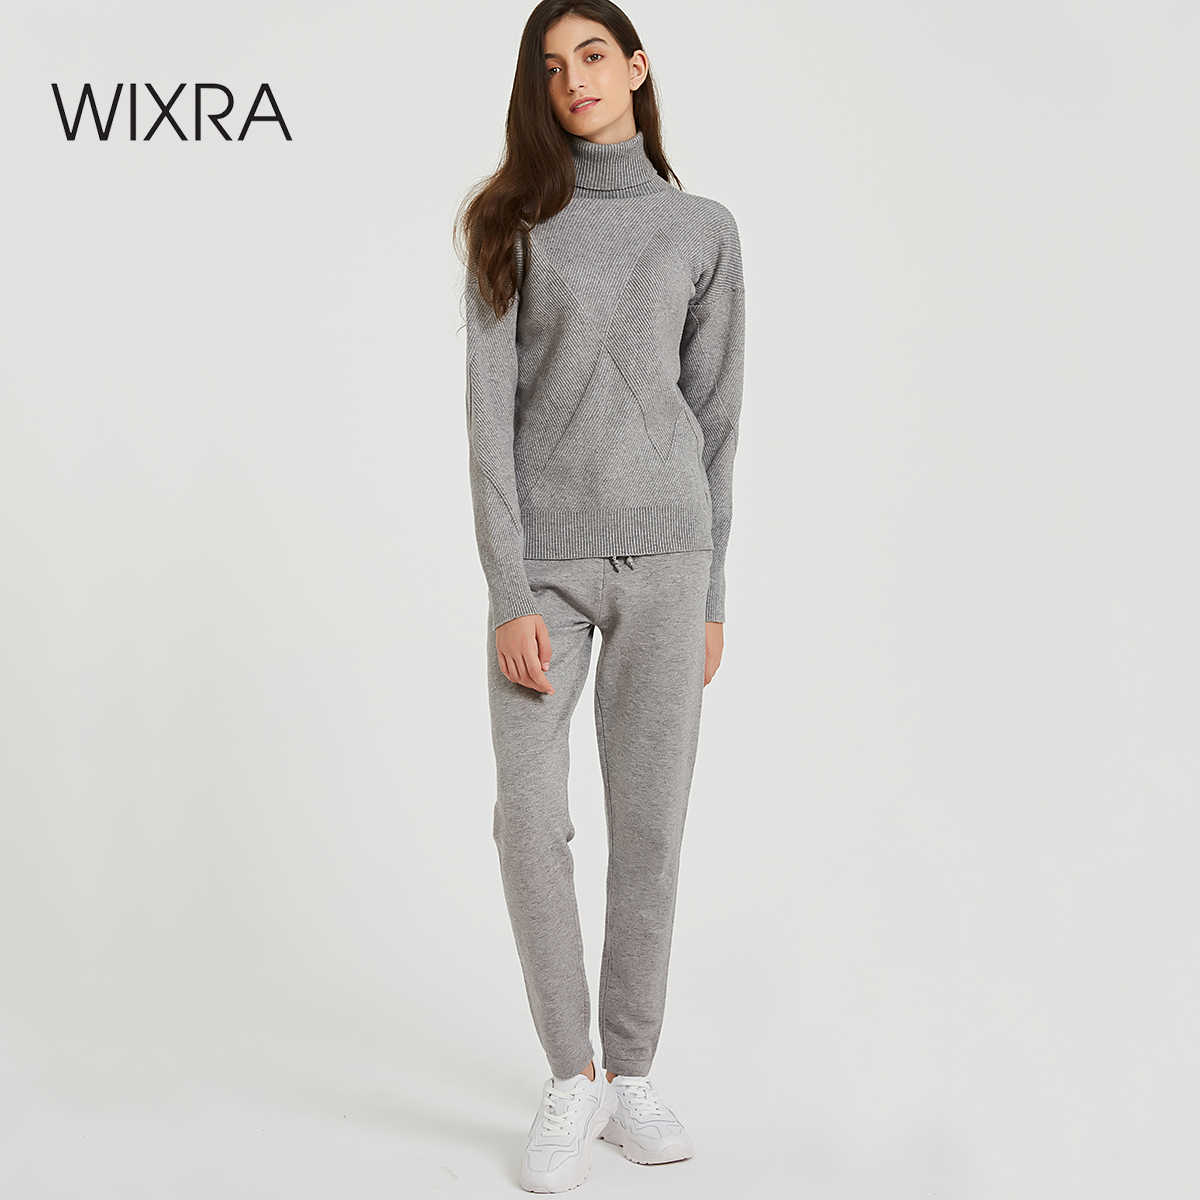 Wixra Autumn Winter Casual Knitted Women's Sets Turtleneck Long Sleeve Sweaters Lace-up Pants Solid Sets For Ladies